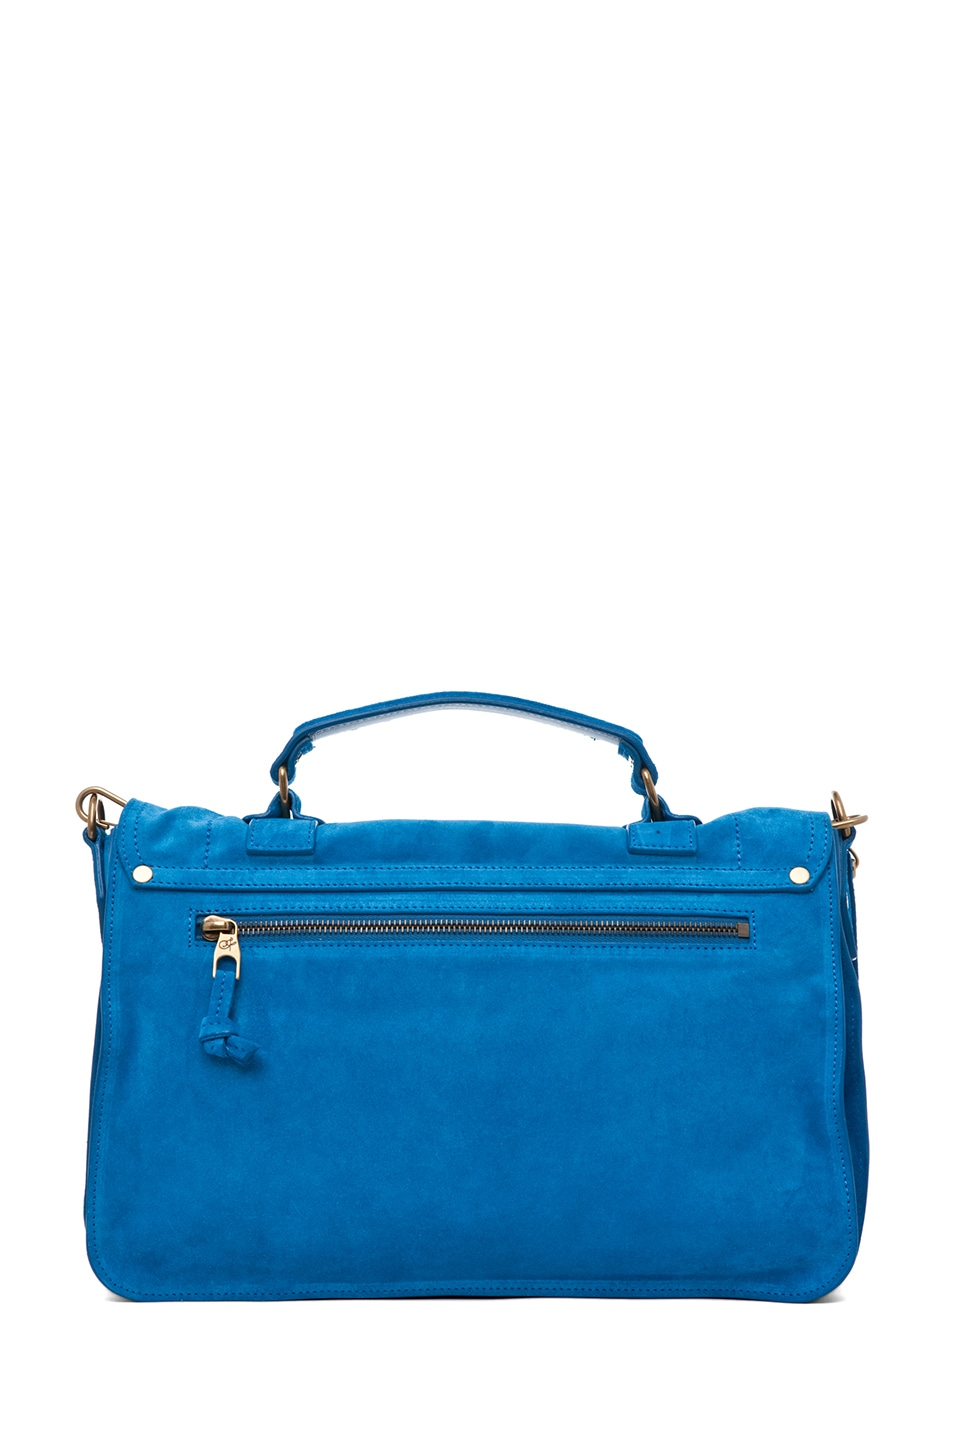 Image 2 of Proenza Schouler PS1 Medium Suede Satchel in Light Peacock